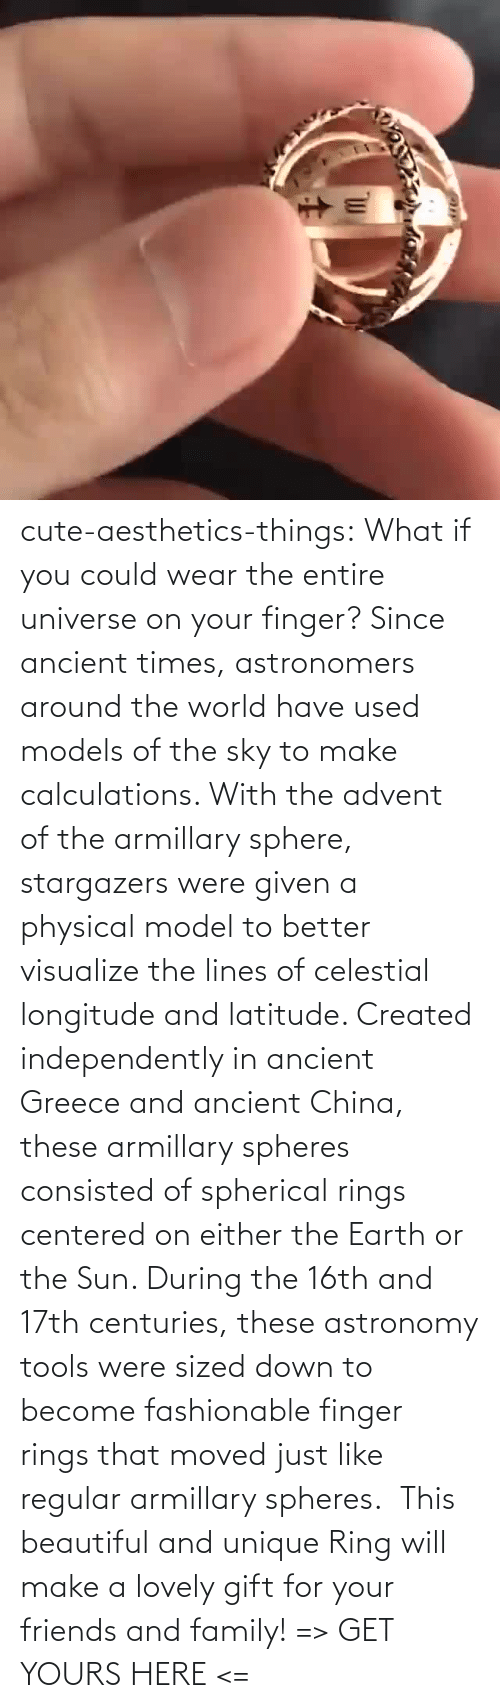 China: cute-aesthetics-things: What if you could wear the entire universe on your finger? Since ancient times, astronomers around the world have used models of the sky to make calculations. With the advent of the armillary sphere, stargazers were given a physical model to better visualize the lines of celestial longitude and latitude. Created independently in ancient Greece and ancient China, these armillary spheres consisted of spherical rings centered on either the Earth or the Sun. During the 16th and 17th centuries, these astronomy tools were sized down to become fashionable finger rings that moved just like regular armillary spheres.  This beautiful and unique Ring will make a lovely gift for your friends and family! => GET YOURS HERE <=